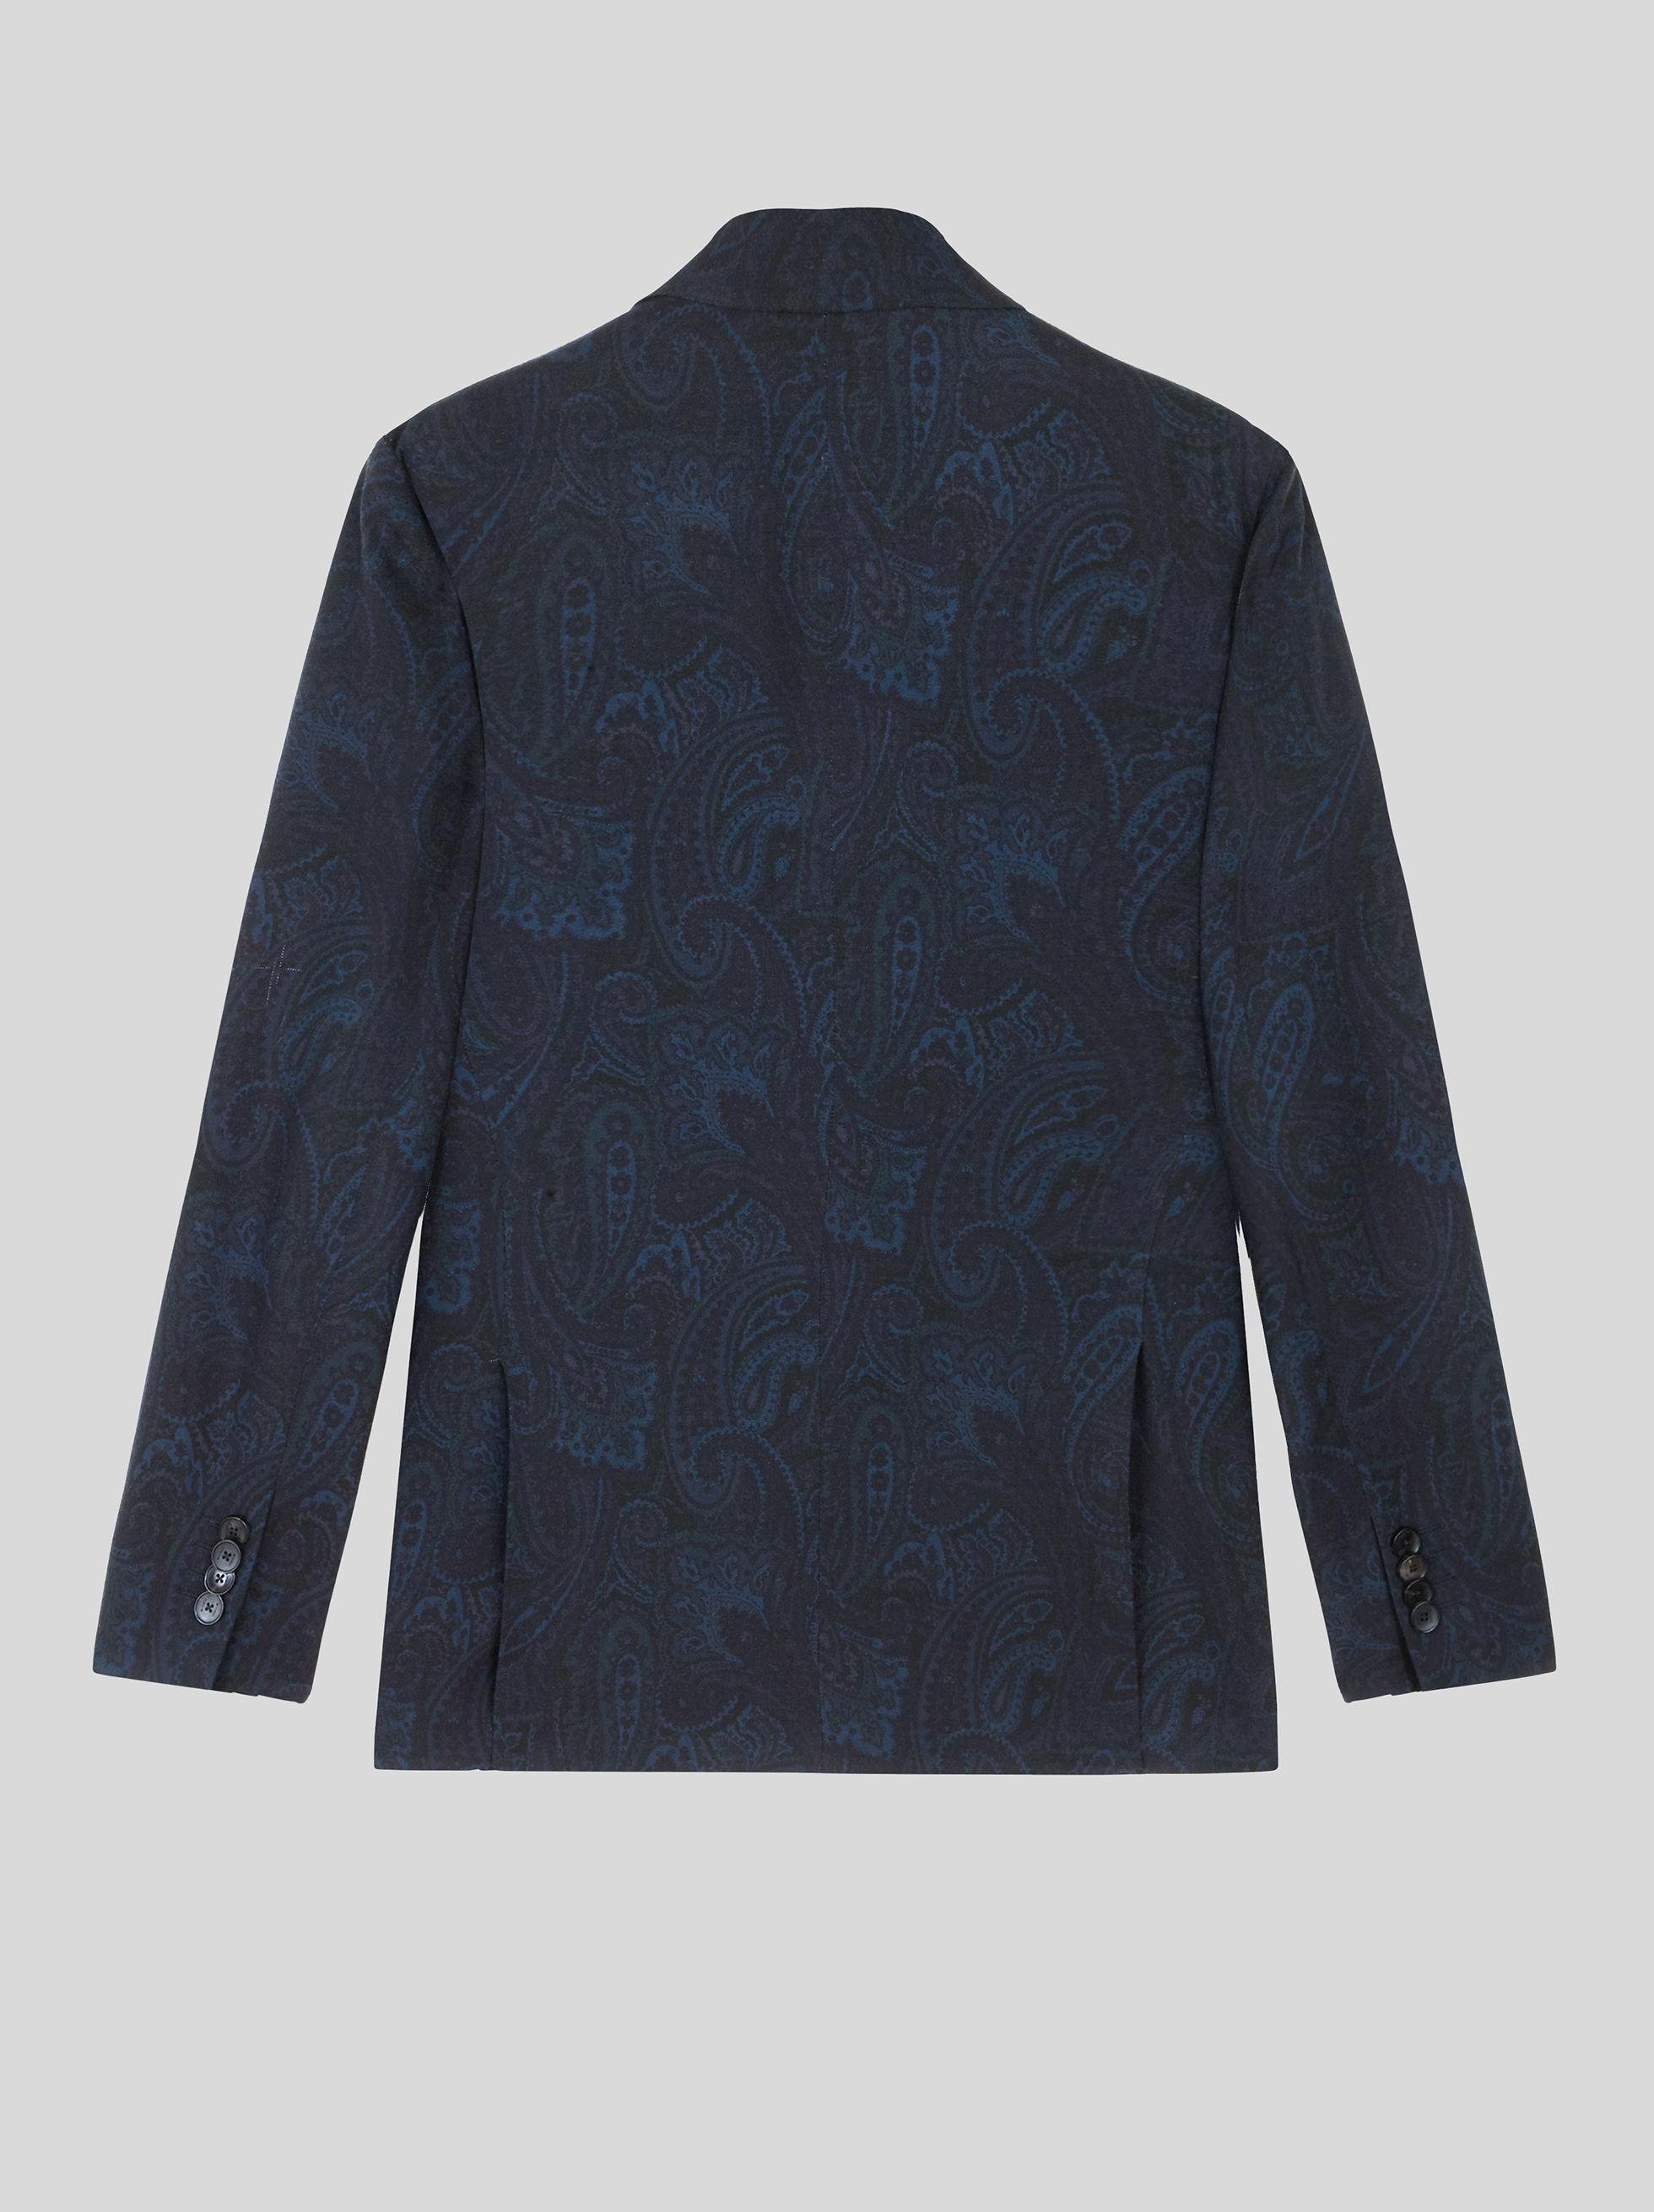 TAILORED JACKET WITH PAISLEY PRINT